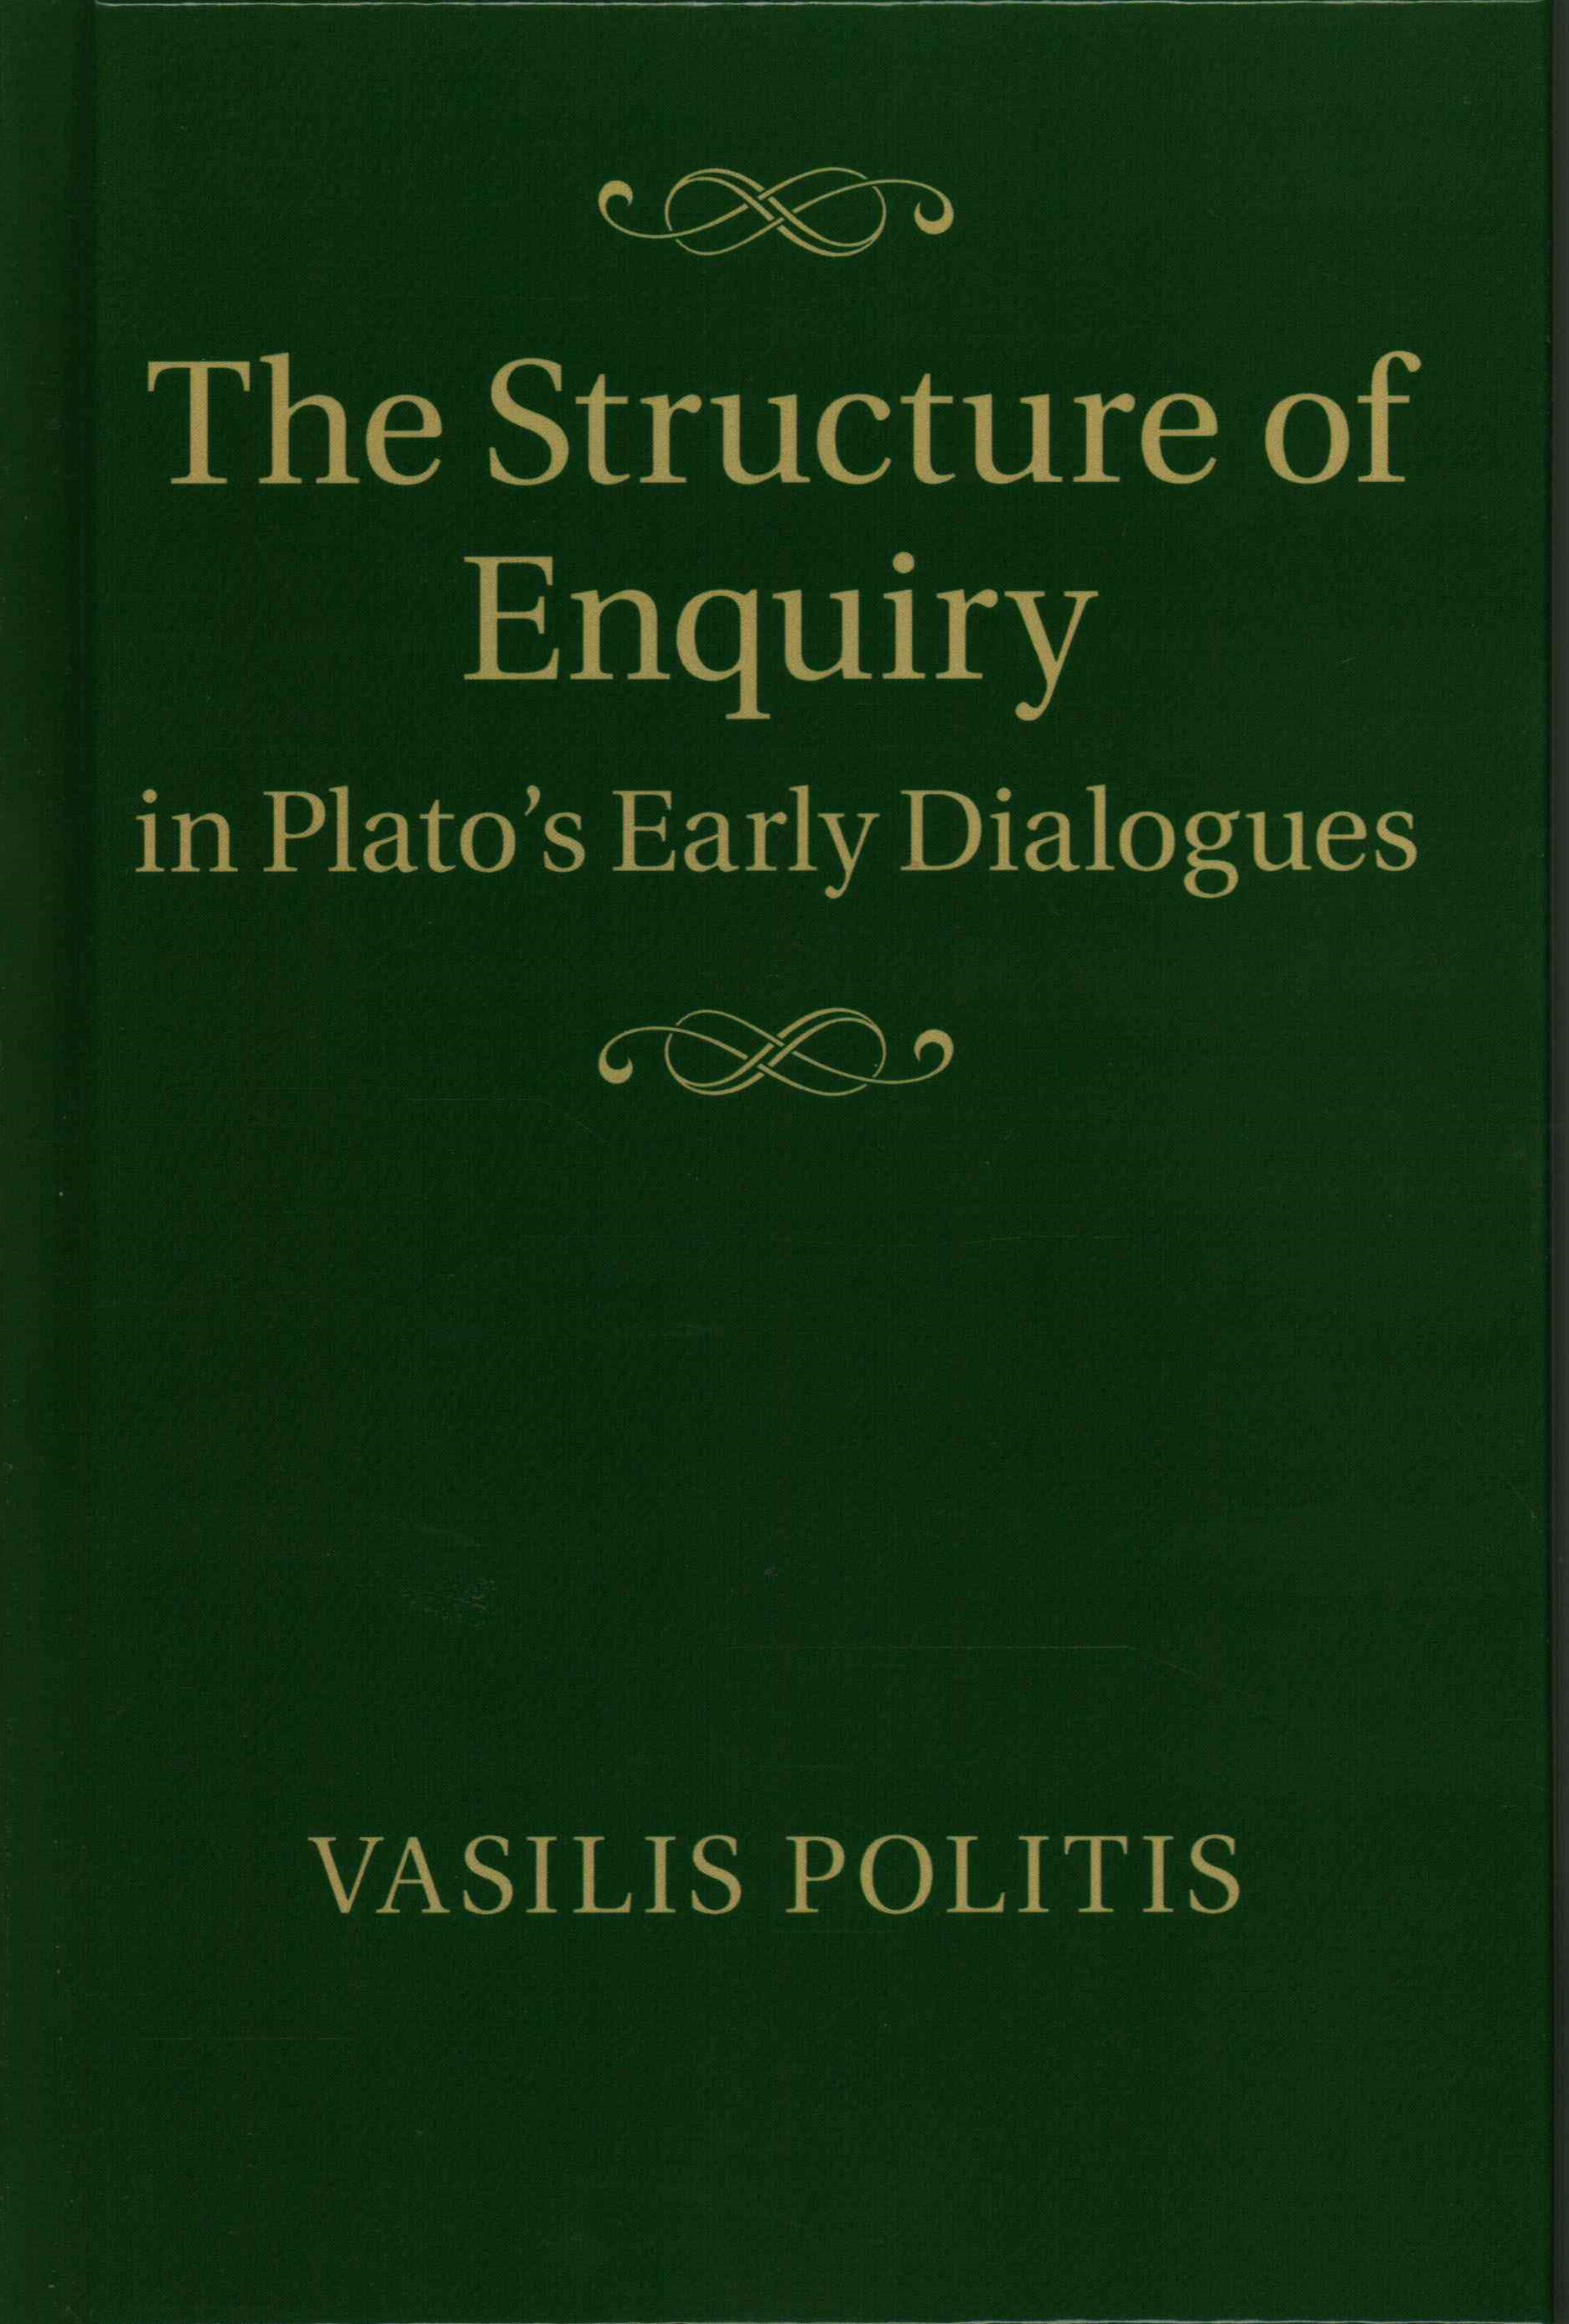 The Structure of Enquiry in Plato's Early Dialogues